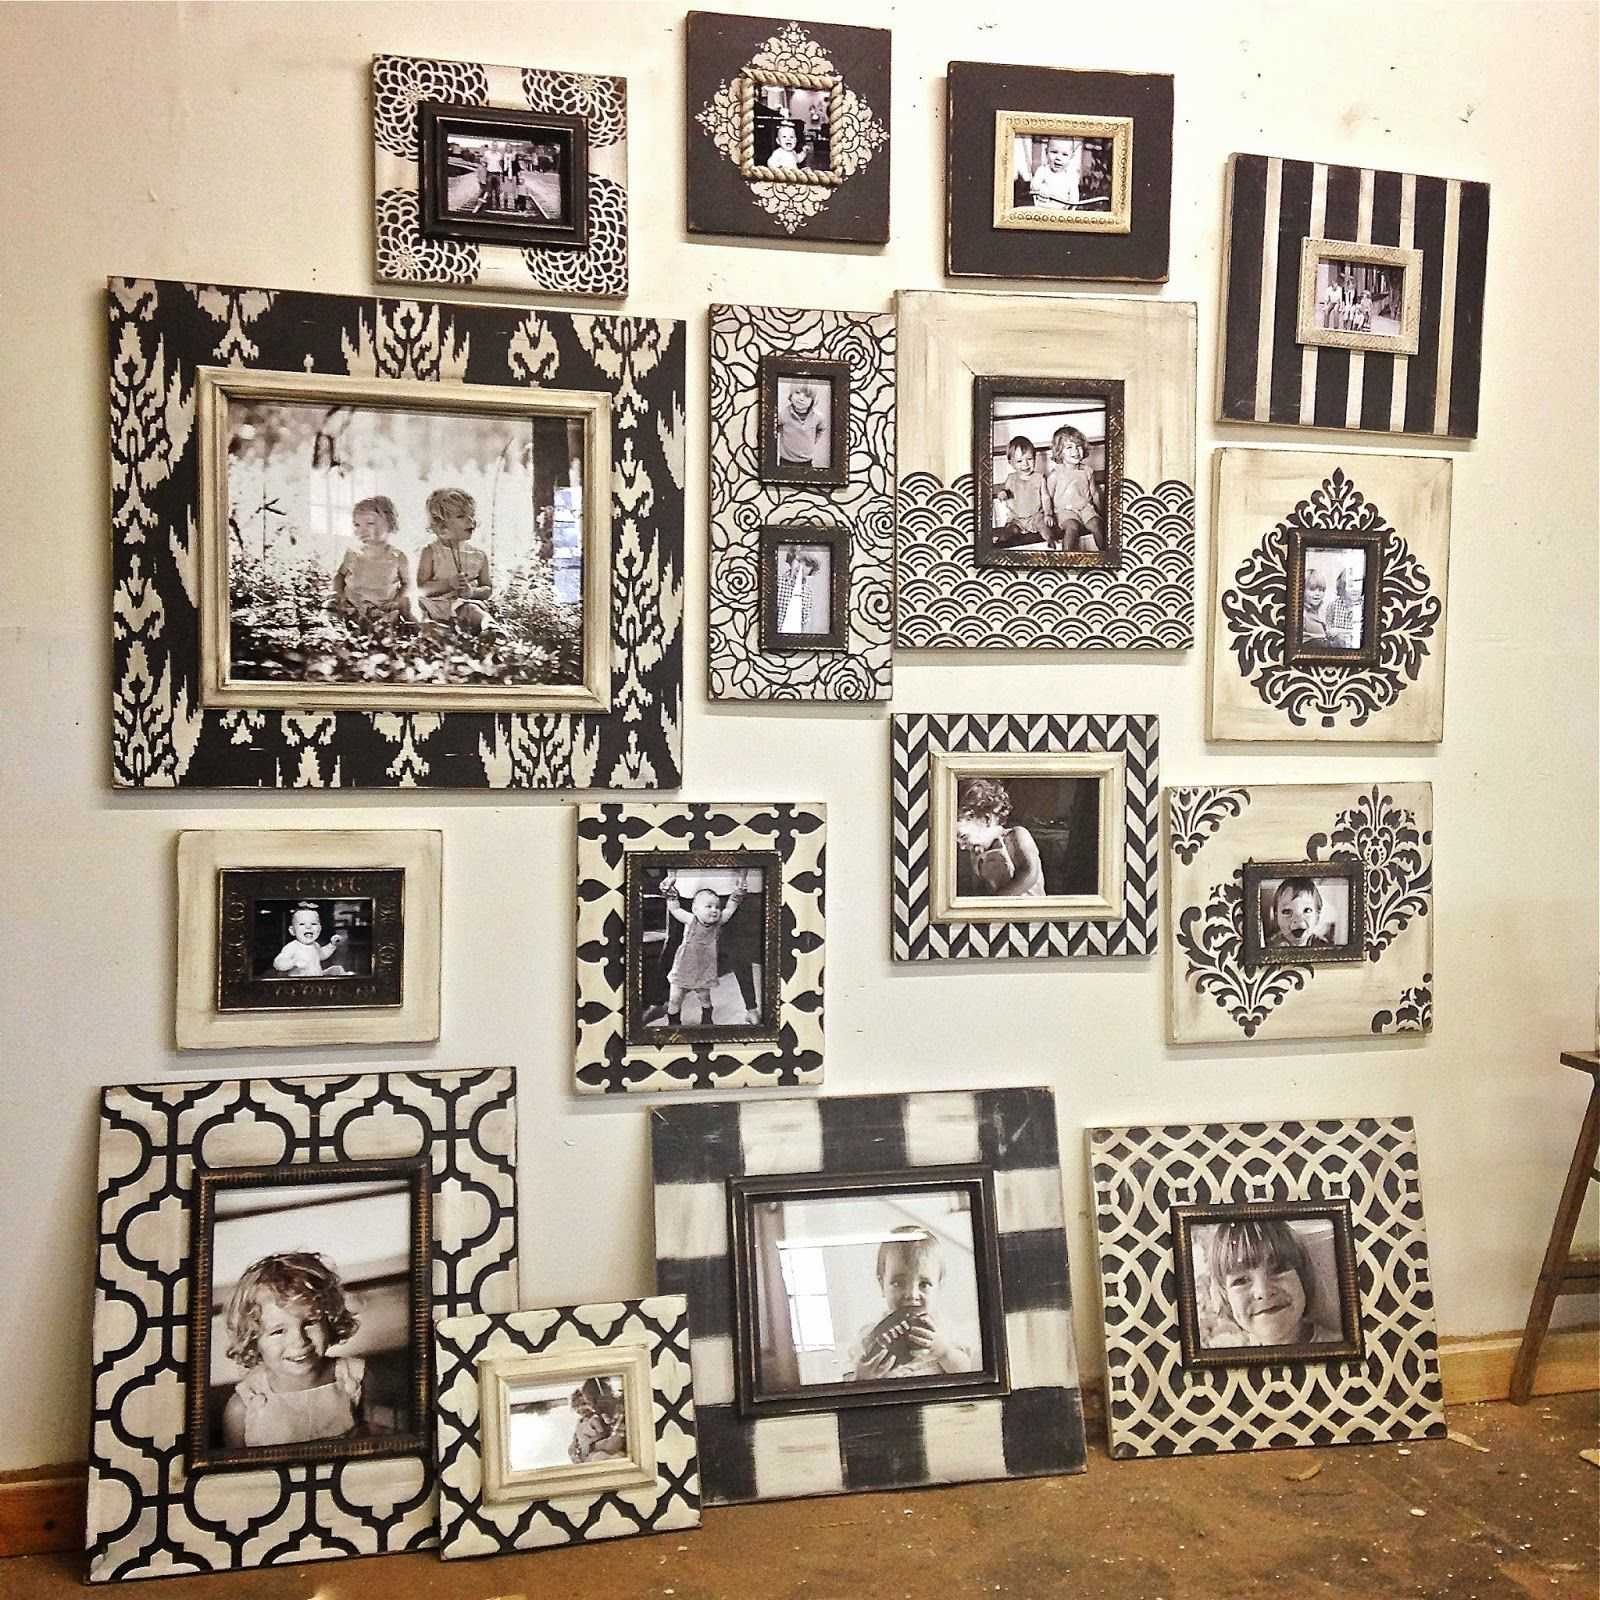 Delta Girl Distressed Frames: Black and White Frames for a Gallery ...